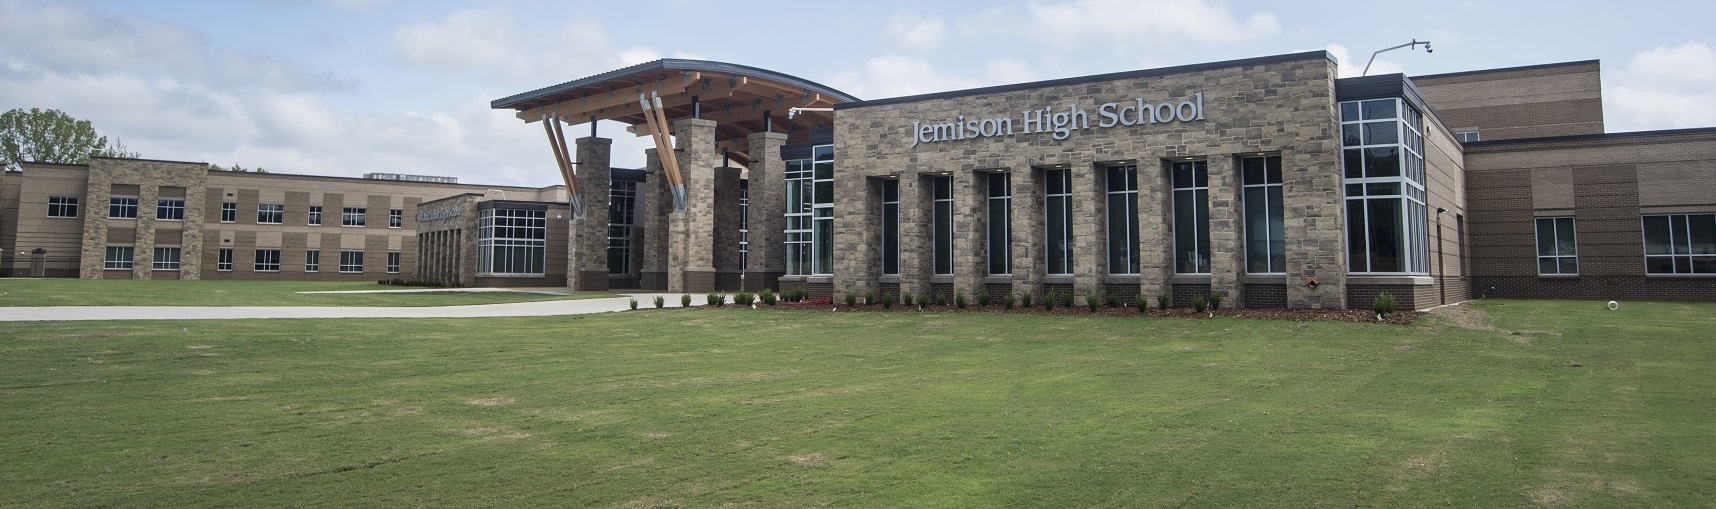 Jemison High School Banner